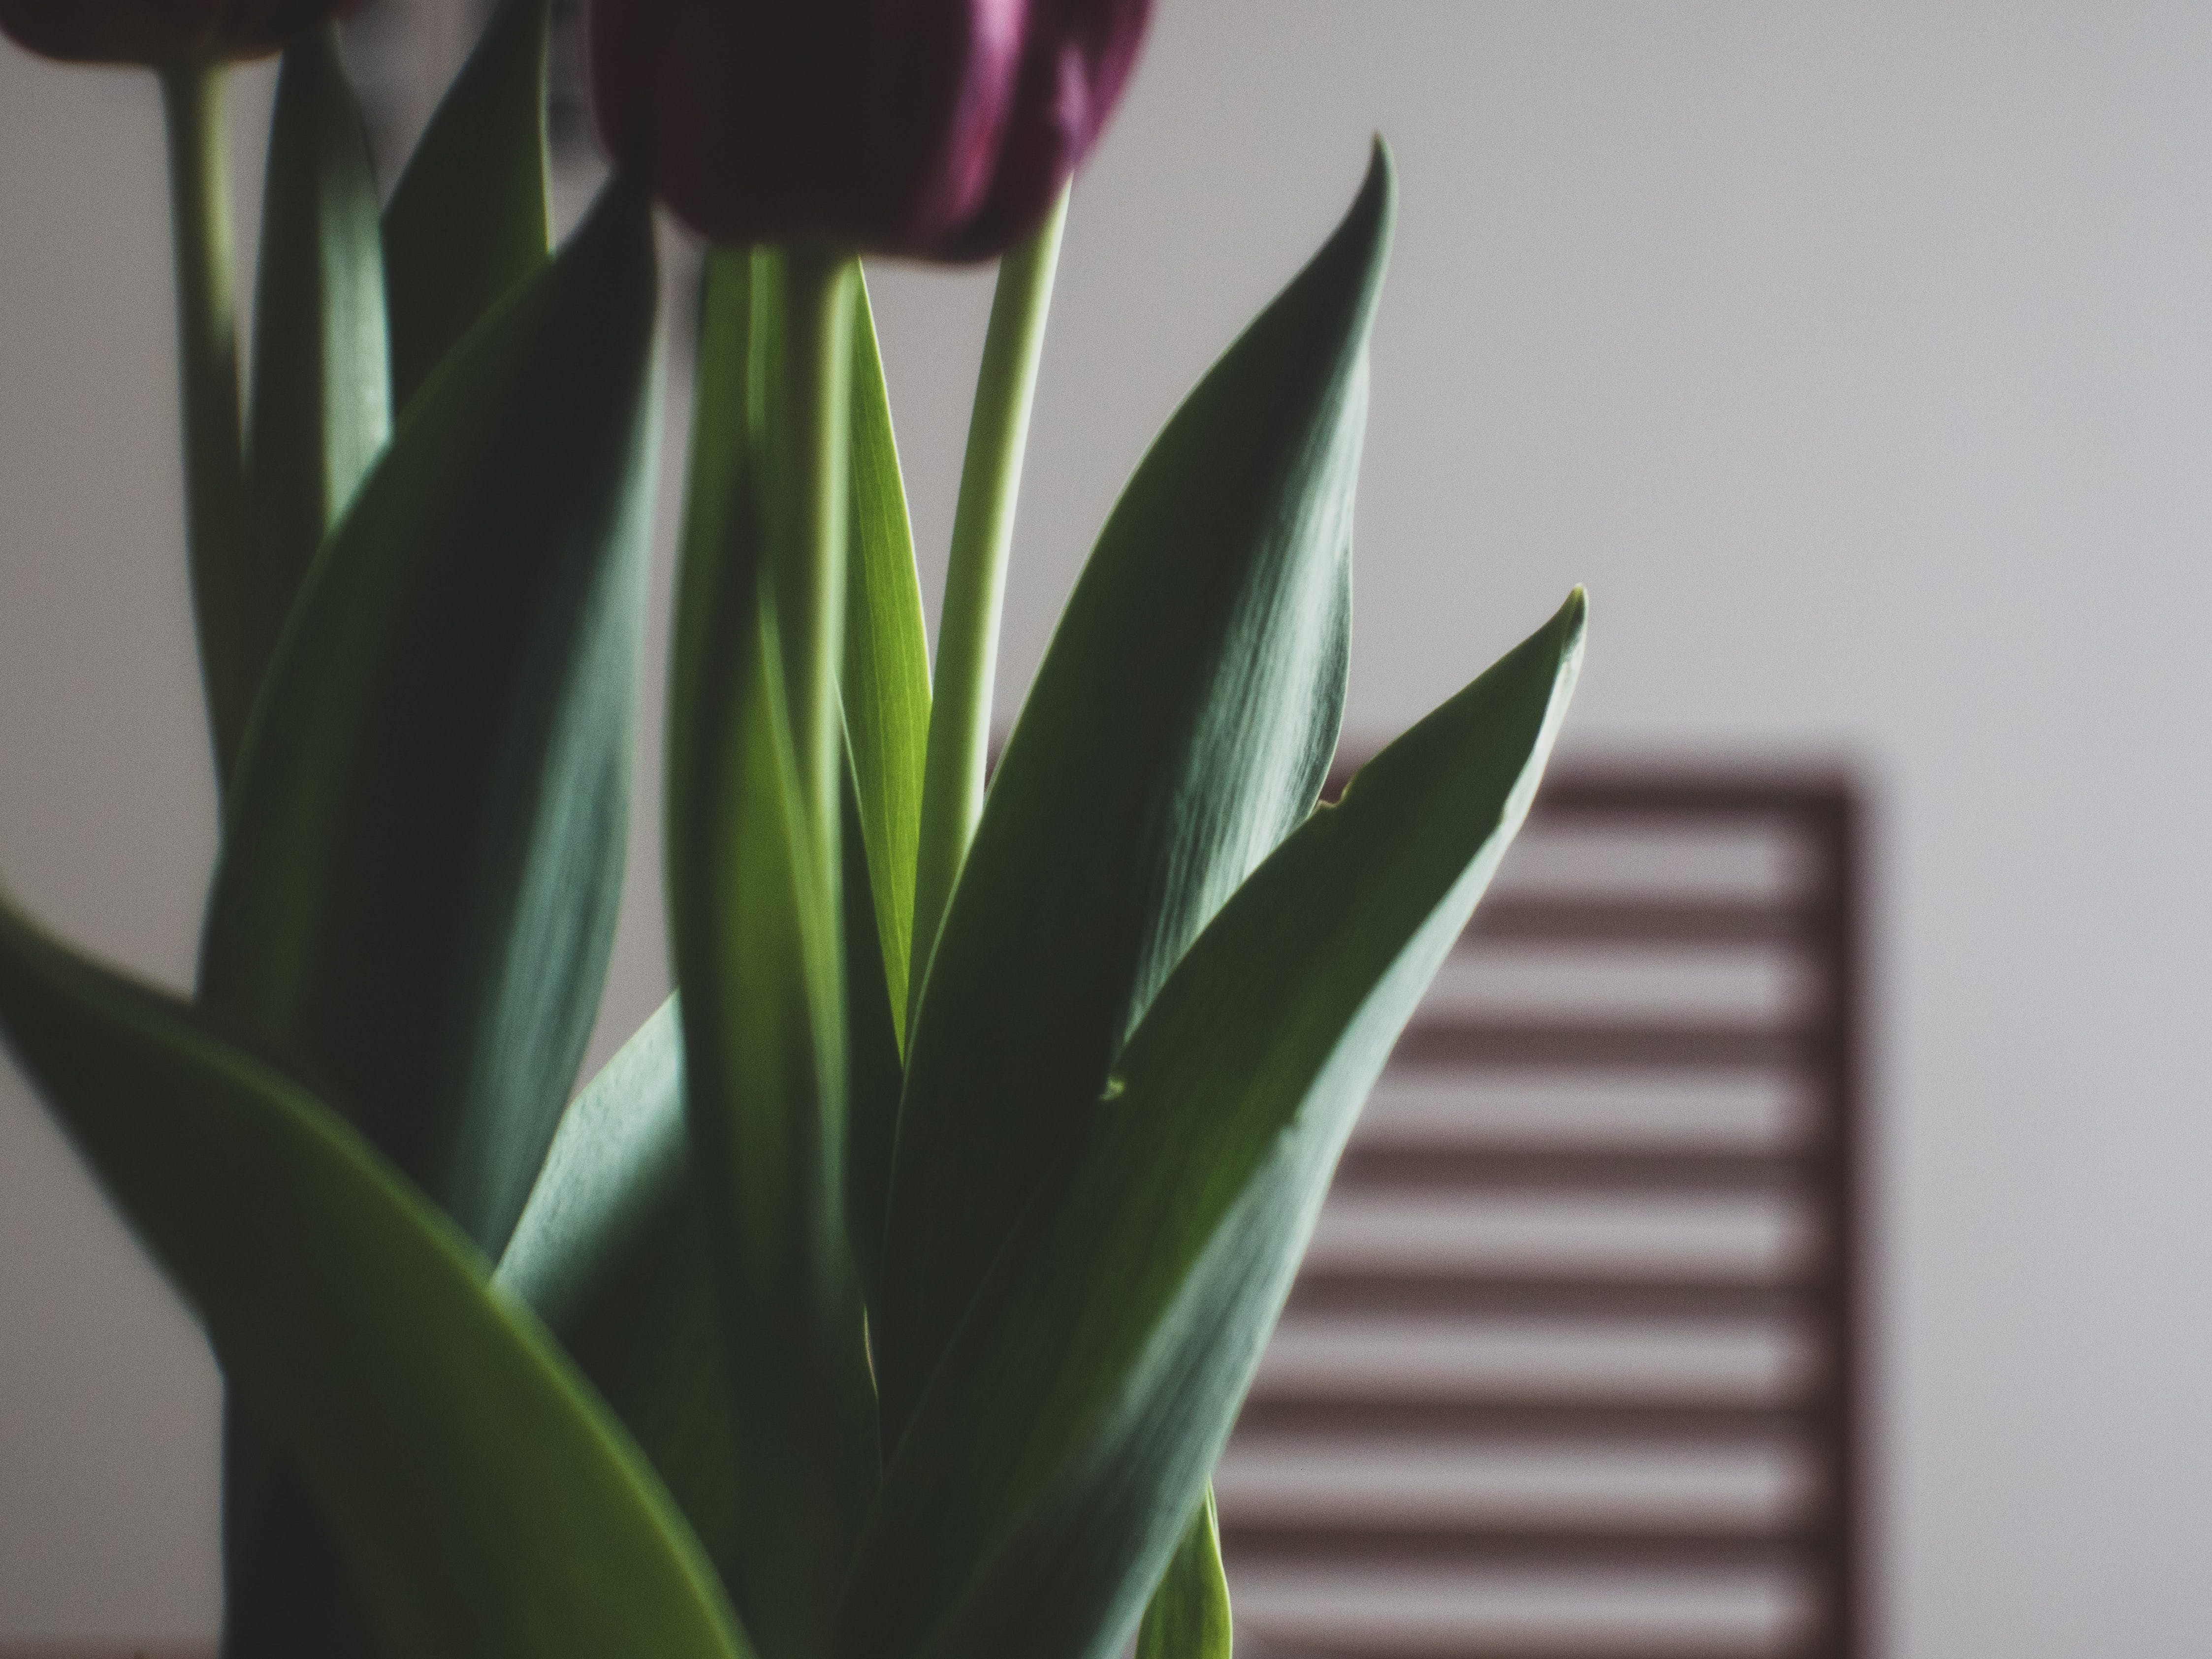 Free stock photo of 35mm, flowers, green, living room